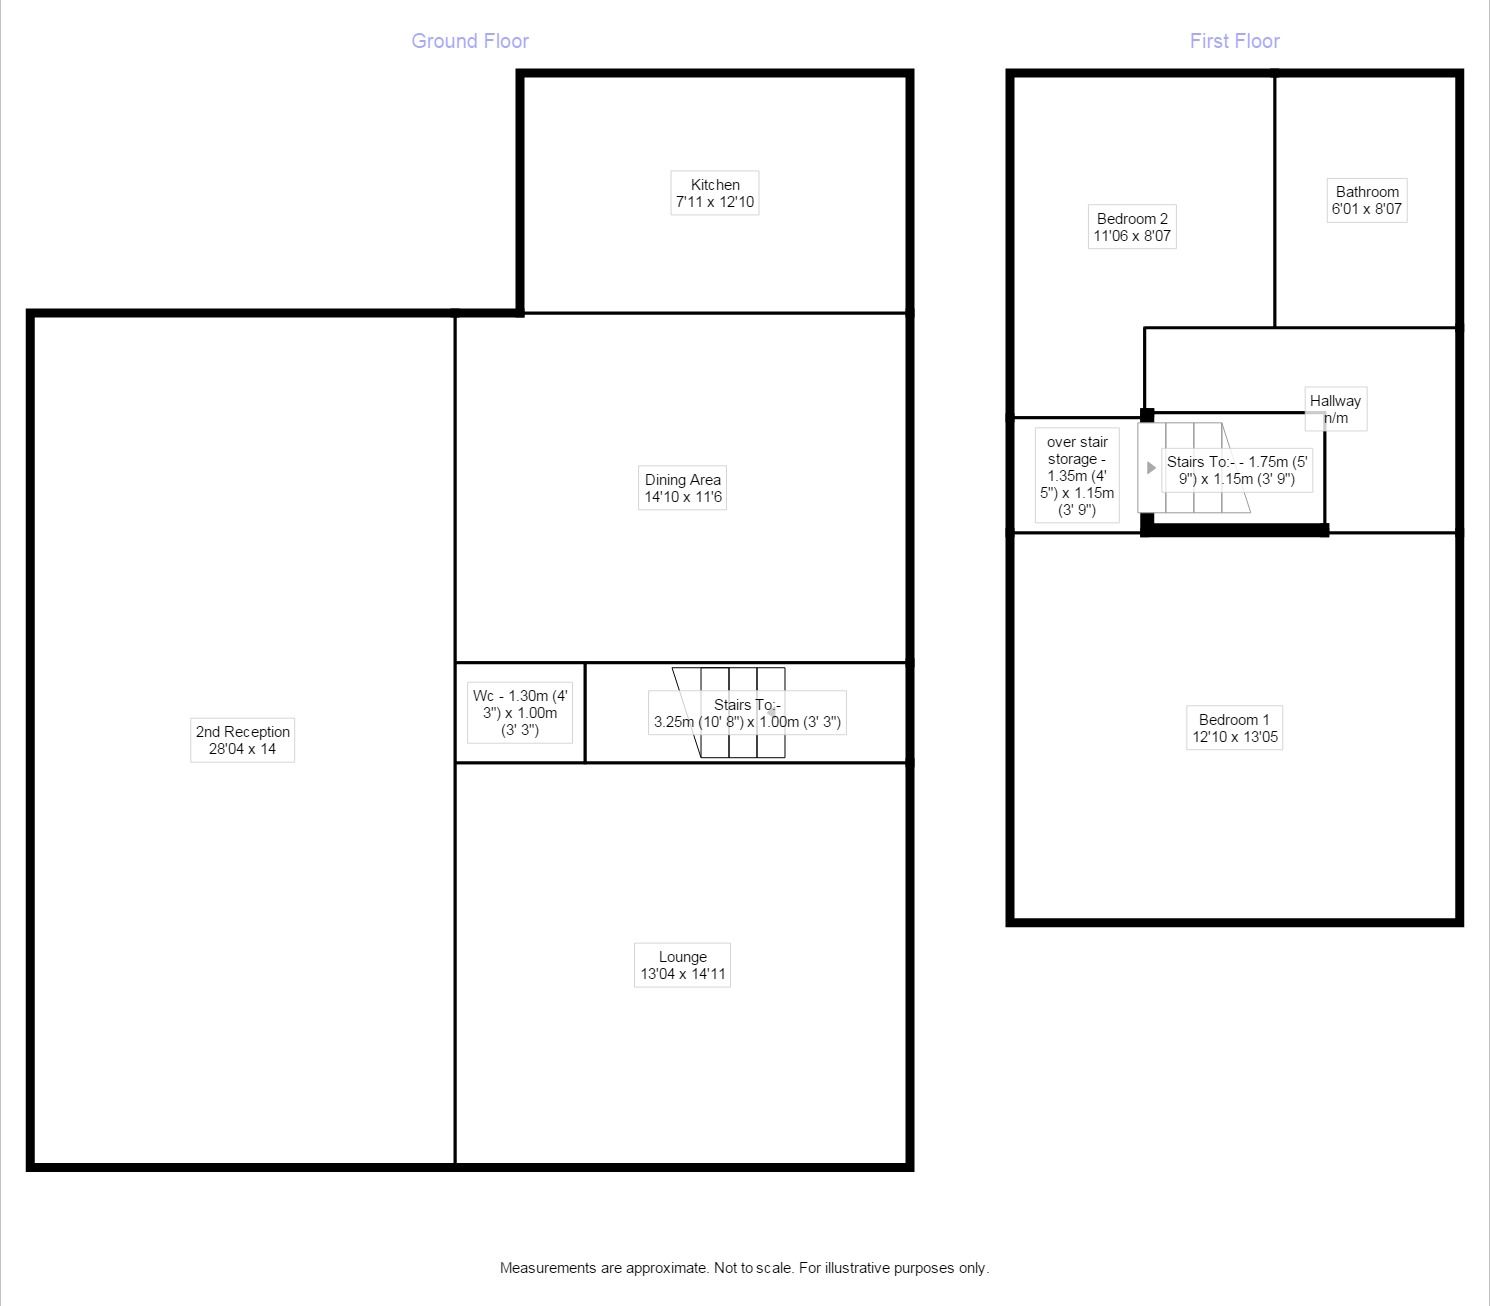 2 bedroom houses for sale in radcliffe manchester your move 2 bedroom houses for sale in margate kent your move